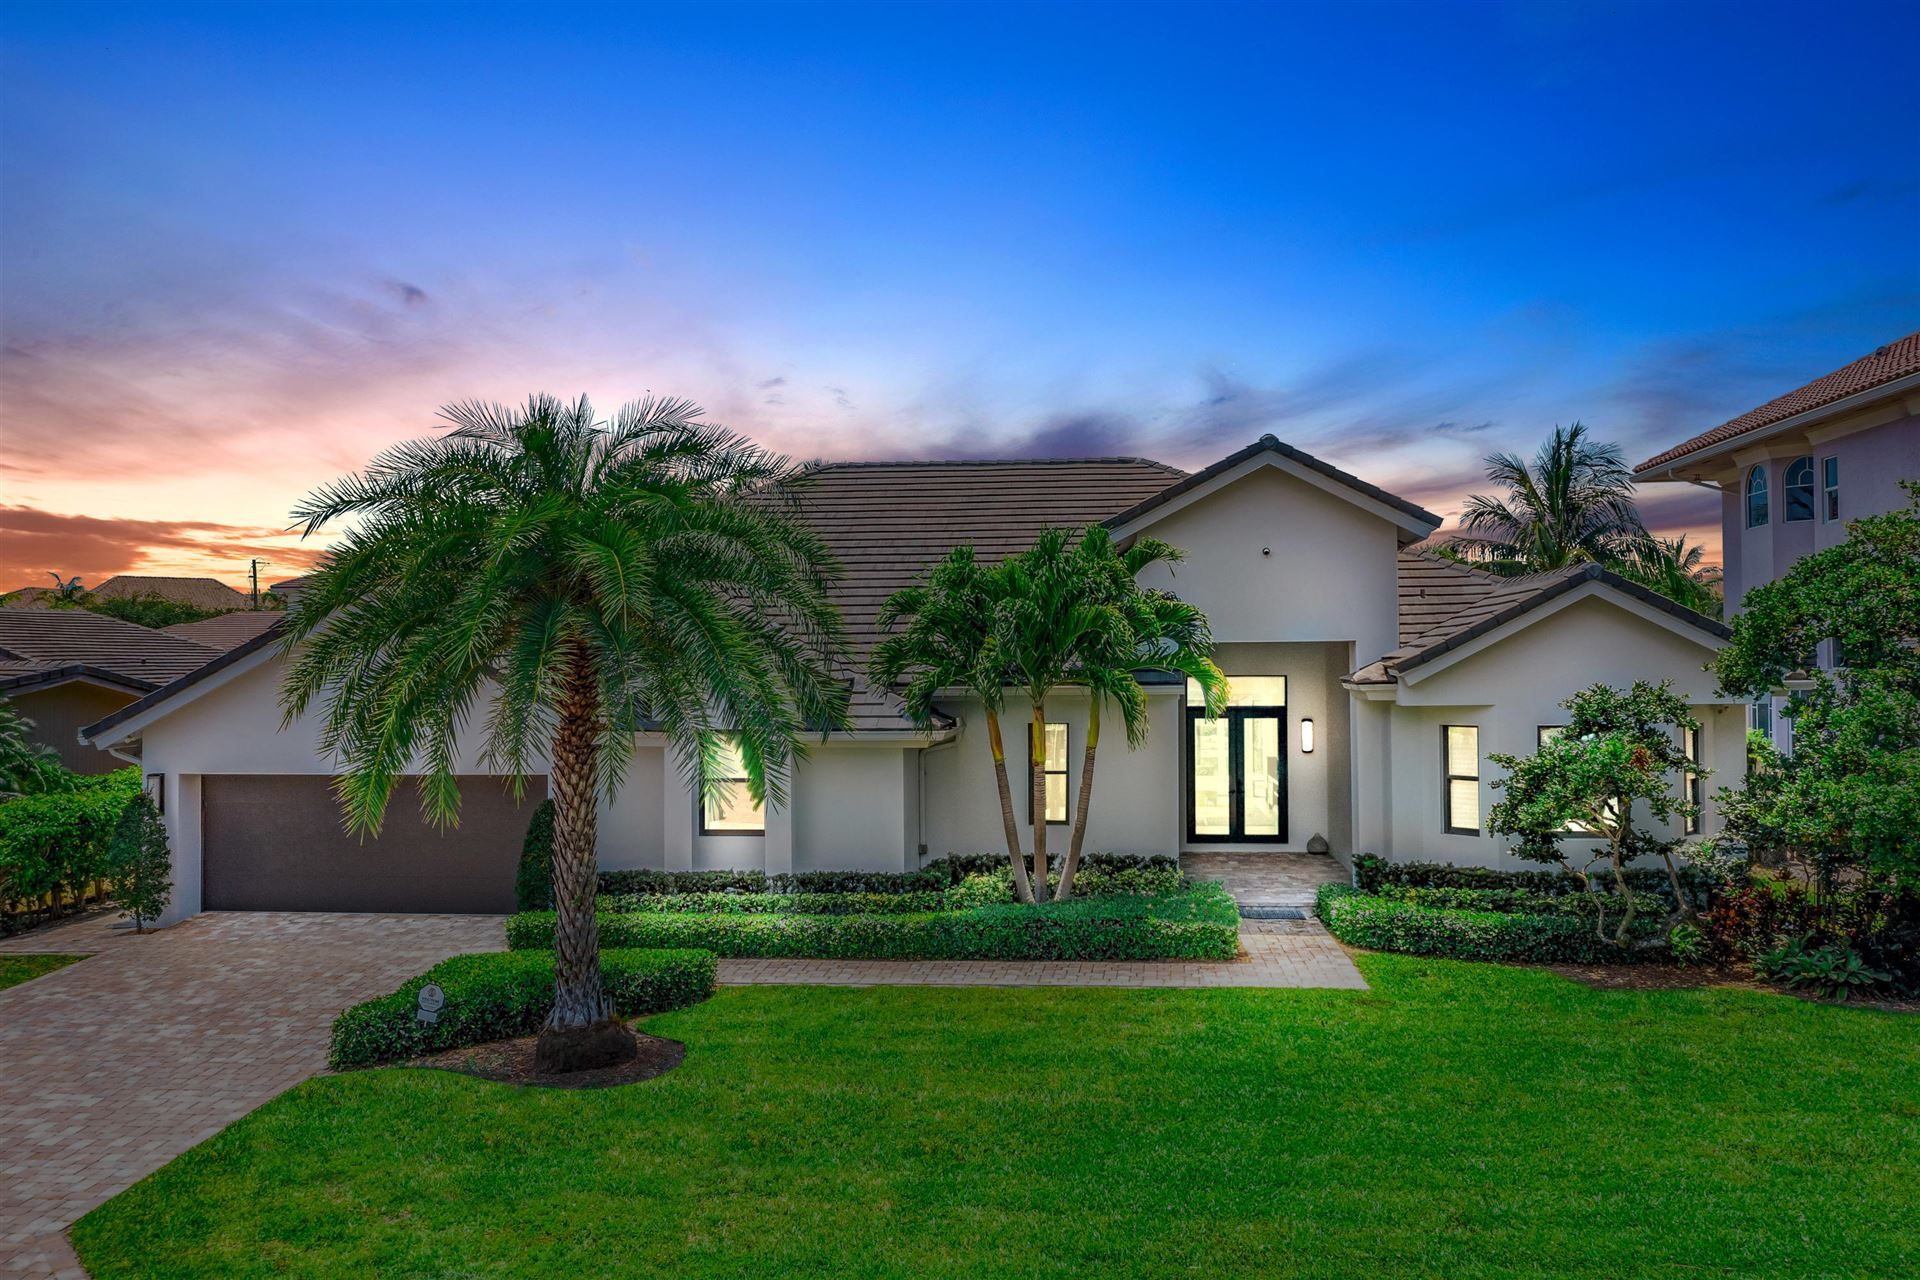 Photo of 968 Cypress Drive, Delray Beach, FL 33483 (MLS # RX-10715351)